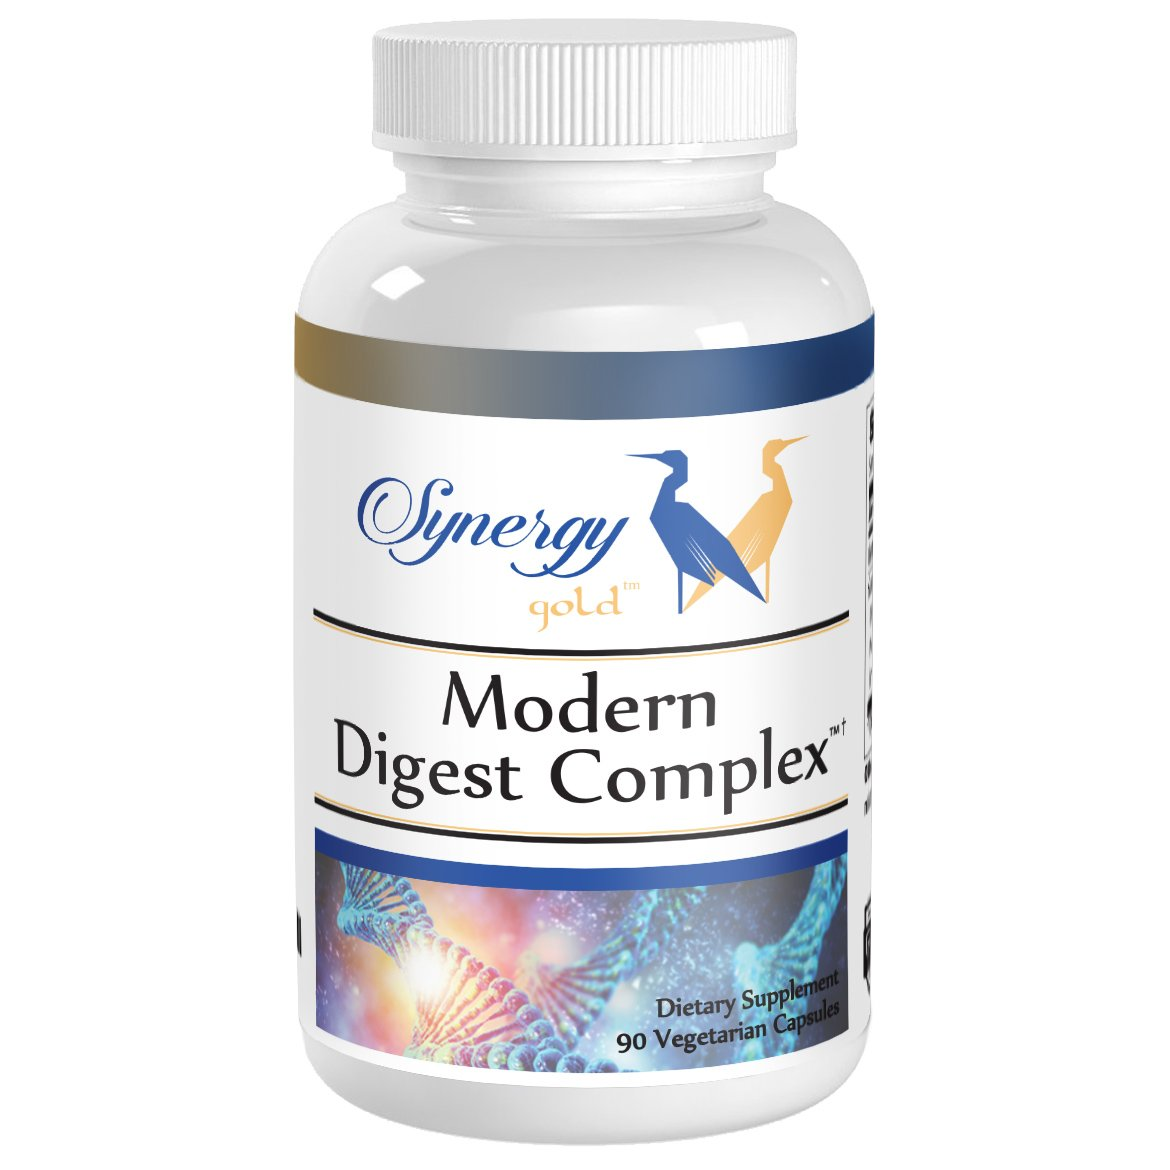 Modern Digestive Enzyme Supplement for Better Breakdown & Absorption of Hard to Digest Foods, Support for Gluten, Fats, Relief for IBS, Leaky Gut, Common Complaints, 1 Mo Supply, 90 Count by Synergy Gold